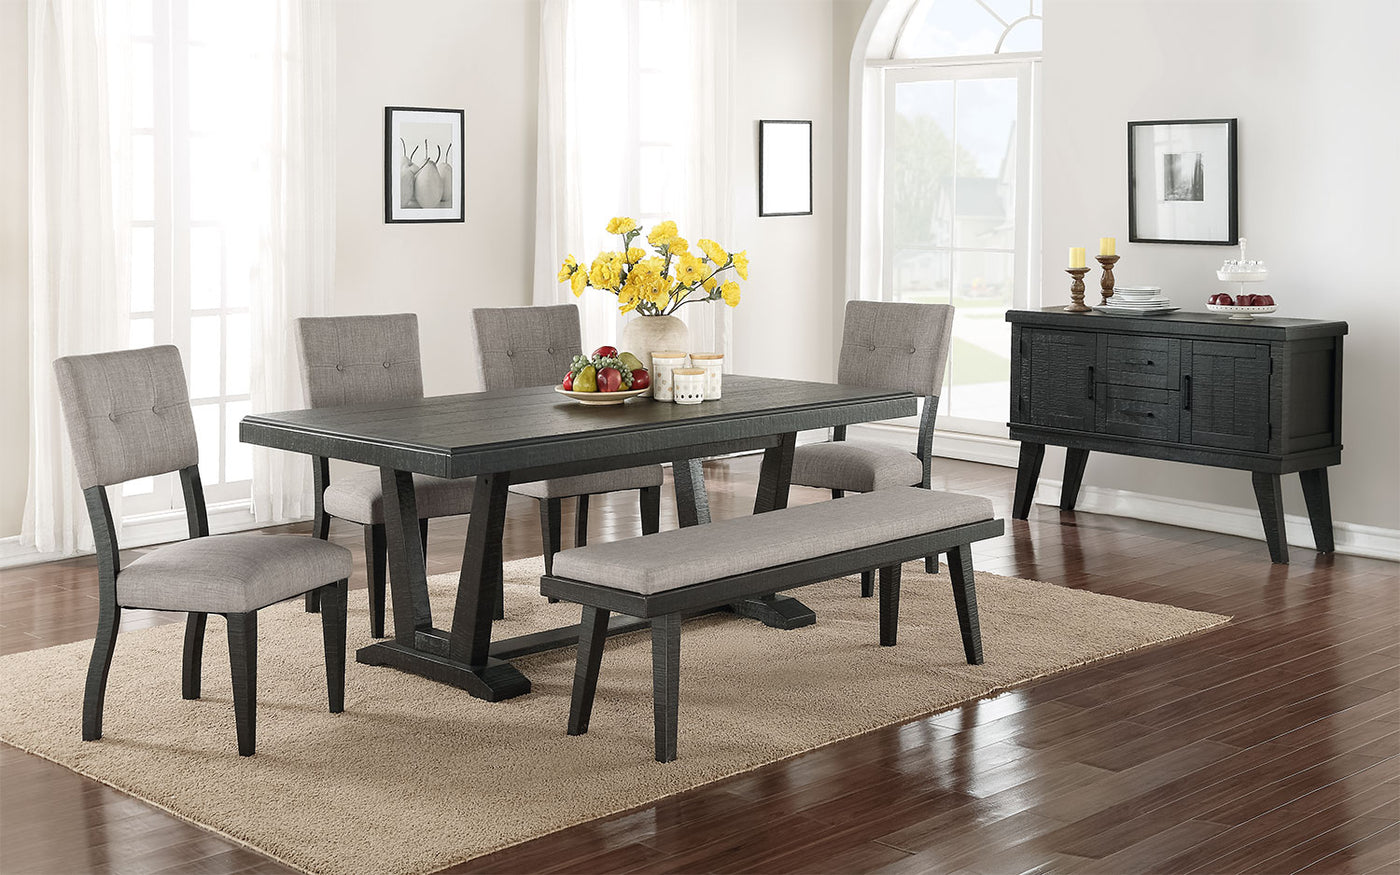 Miraculous Imari 6 Piece Dining Room Set Black And Grey Dailytribune Chair Design For Home Dailytribuneorg